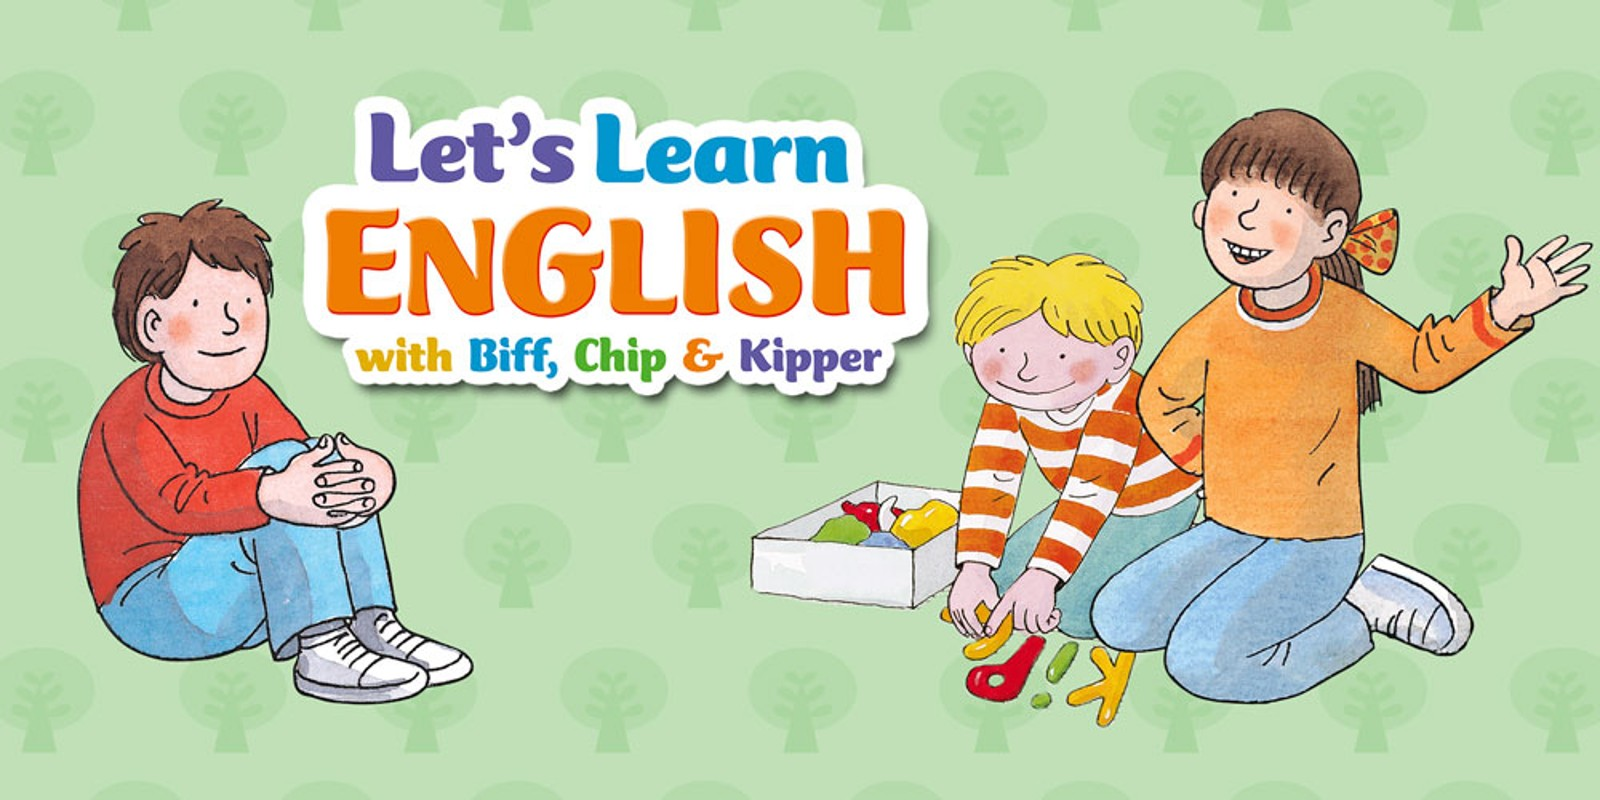 Phonics Fun with Biff, Chip & Kipper